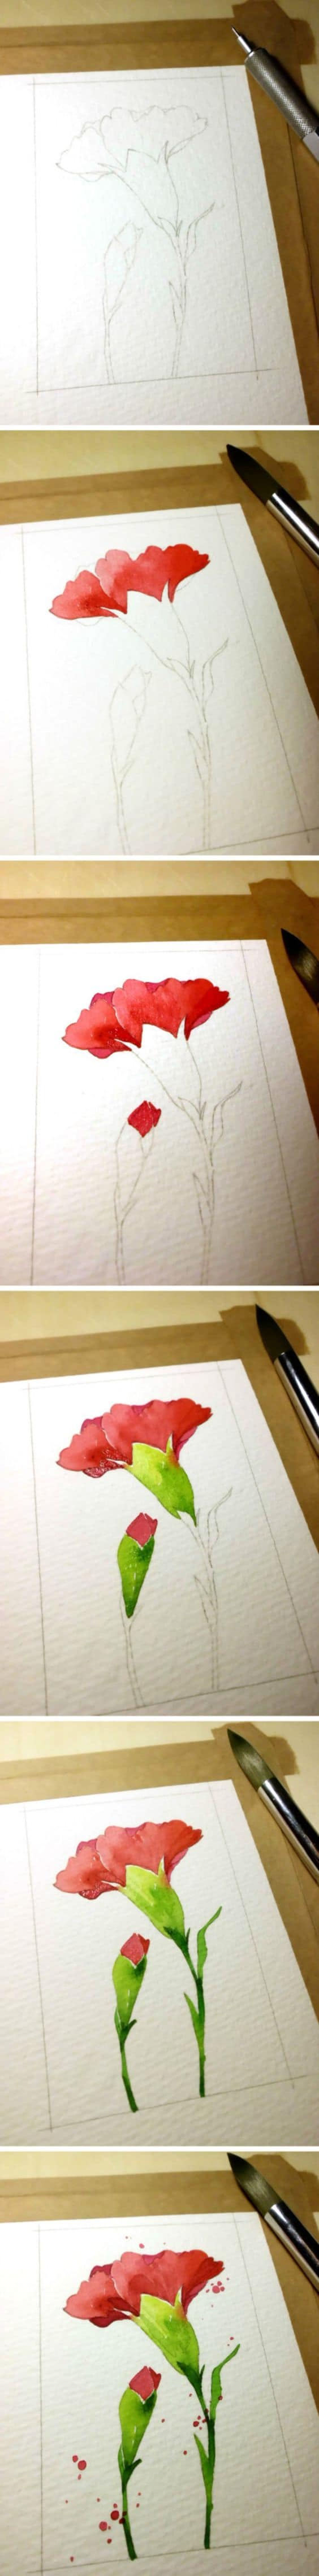 1. DRAW BRIGHT RED CARNATIONS STARTING WITH A SKETCH AND TWO BASIC TONES